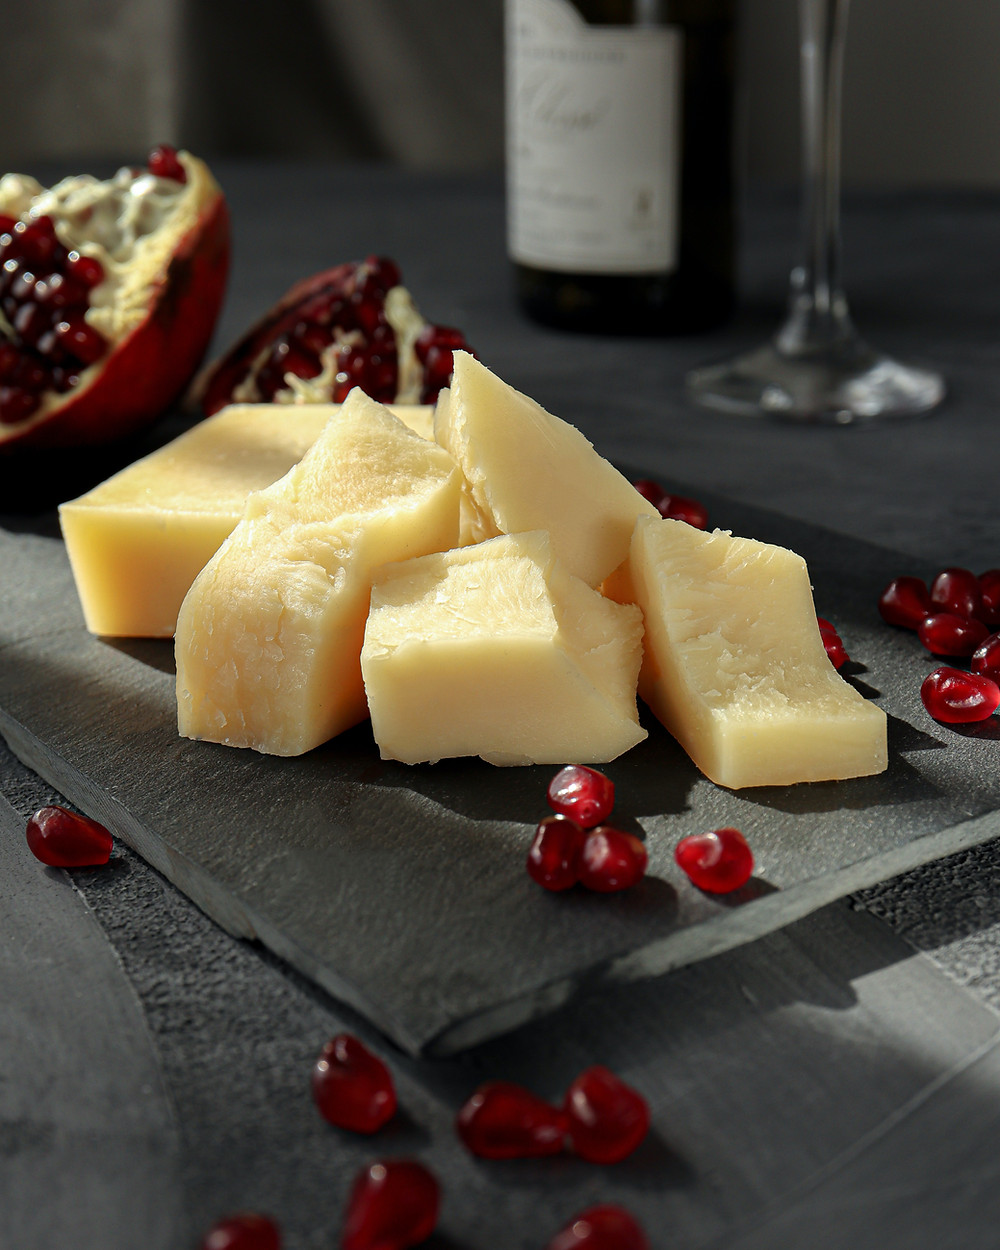 Cheddar cheese safe foods for a healthy pregnancy diet